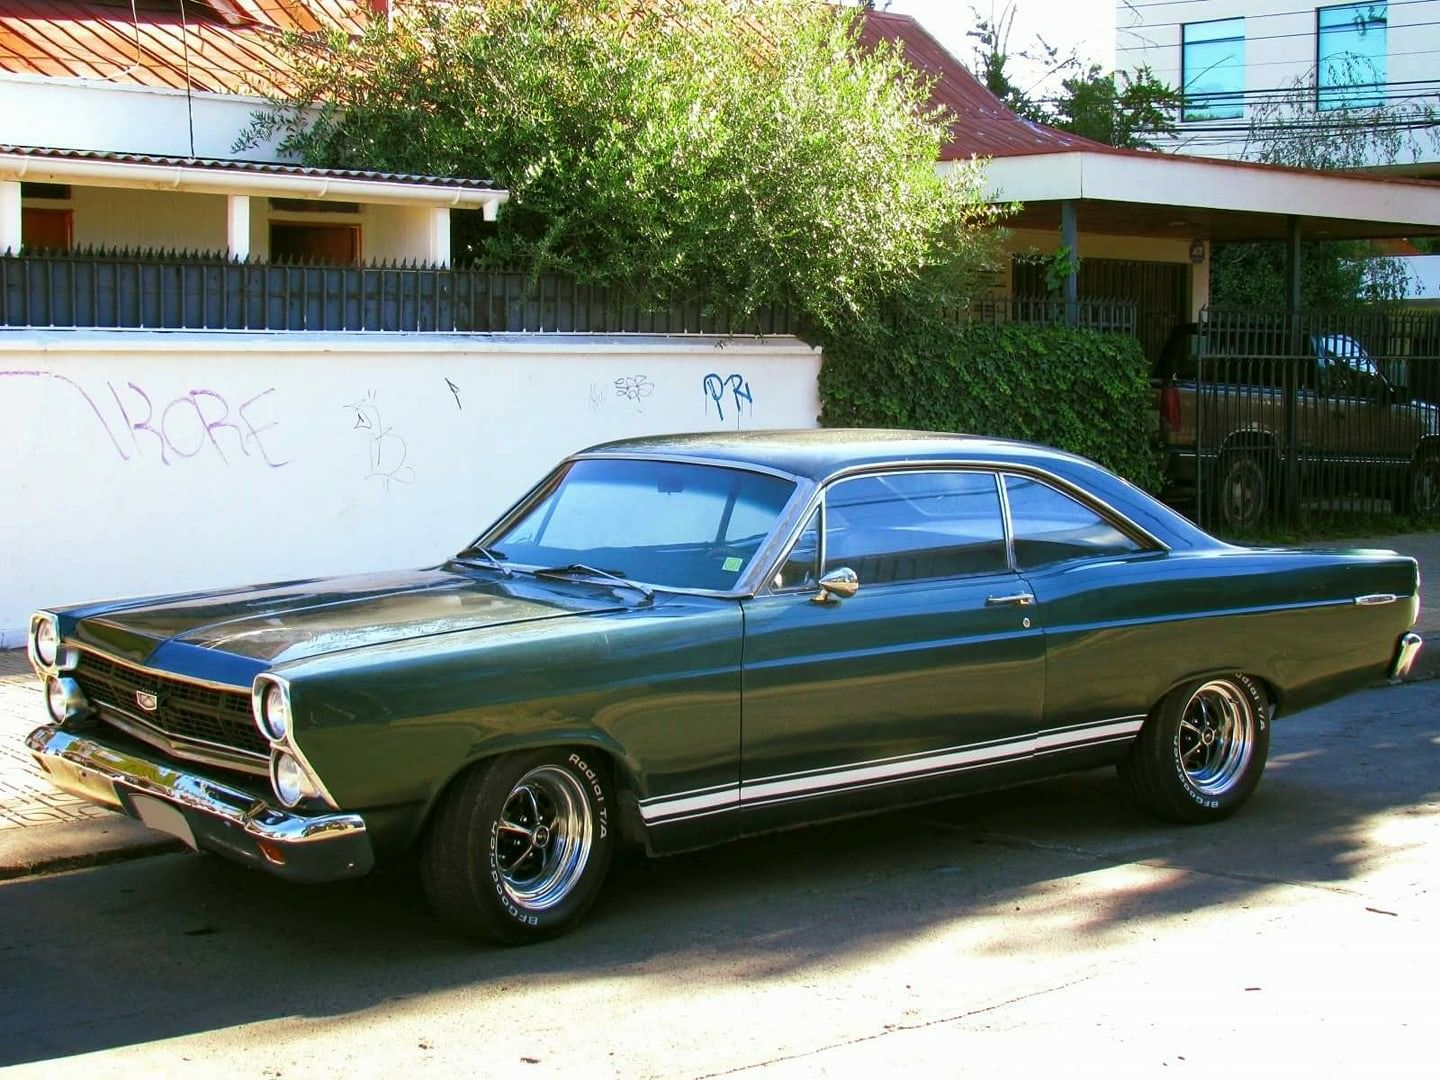 67 Ford Fairlane With Images Ford Fairlane Fairlane Ford